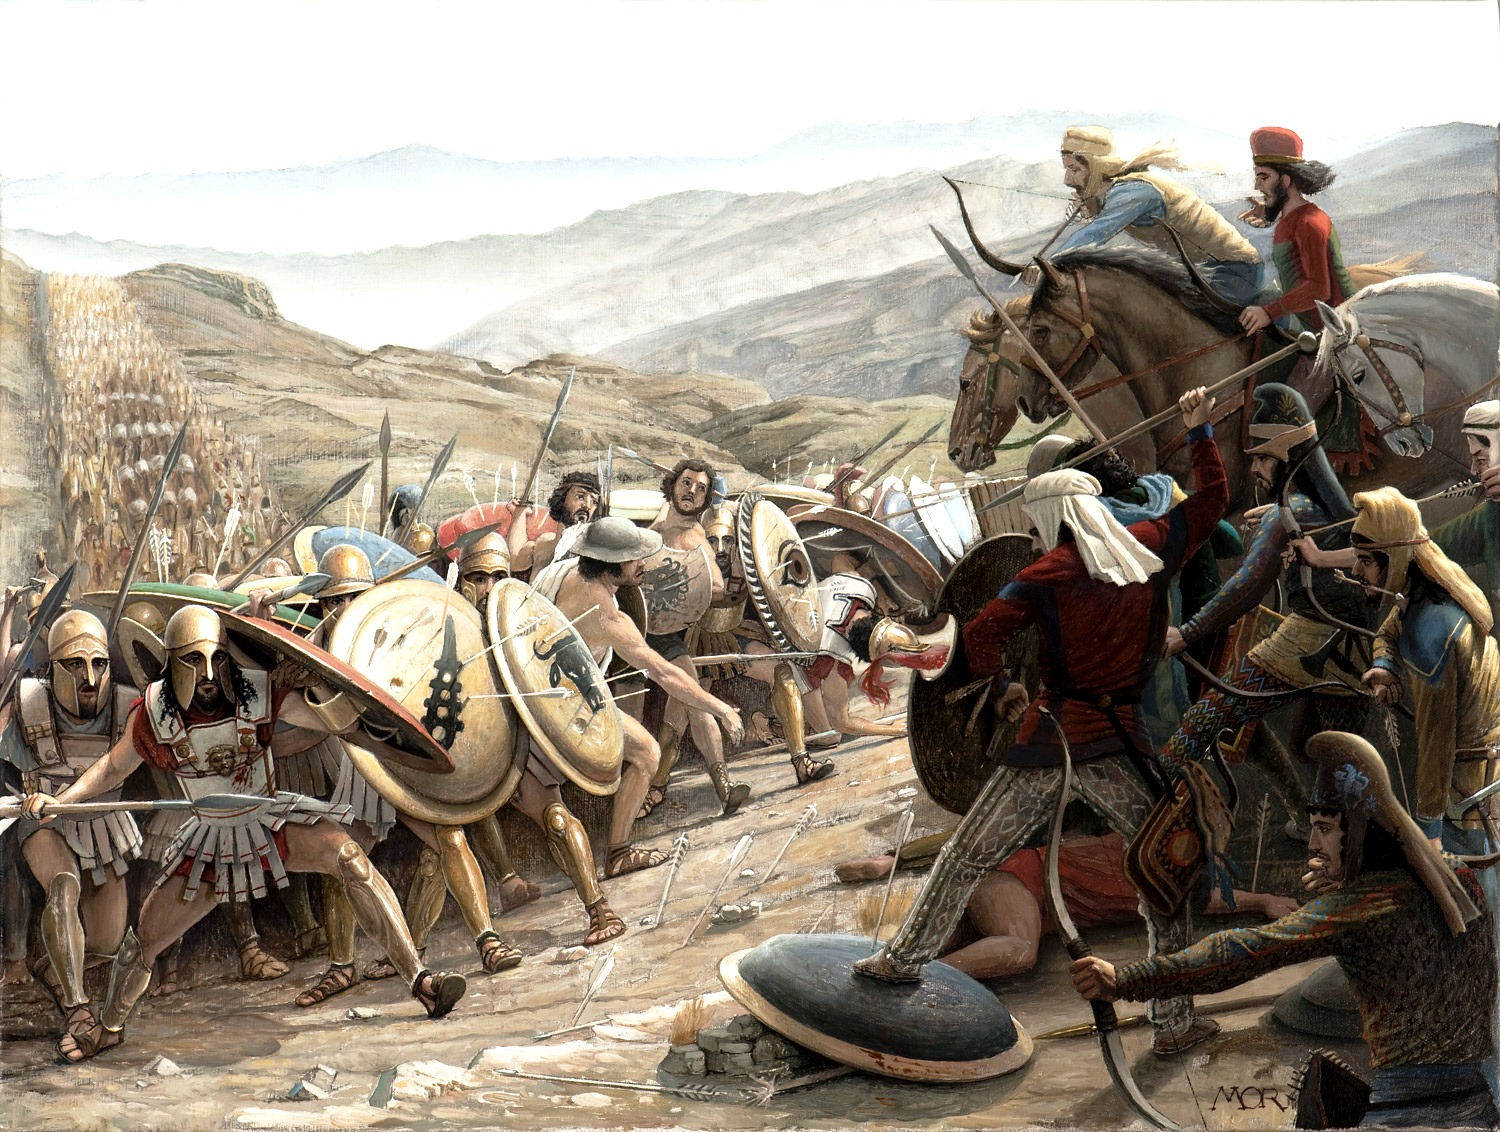 alexander the great in afghanistan Alexander iii of macedon, known as alexander the great (21 july 356 bce – 10 or 11 june 323 bce), was the son of king philip ii of macedon he became.